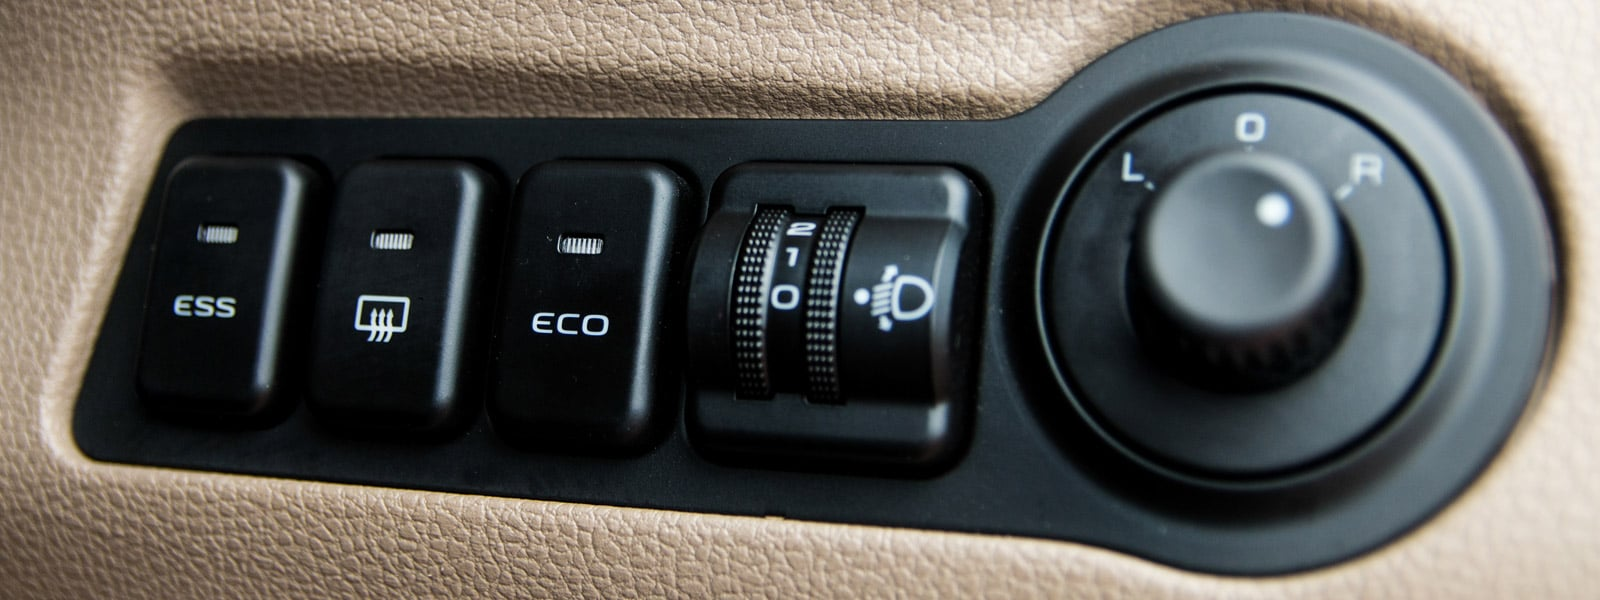 ECO mode + micro hybrid technology